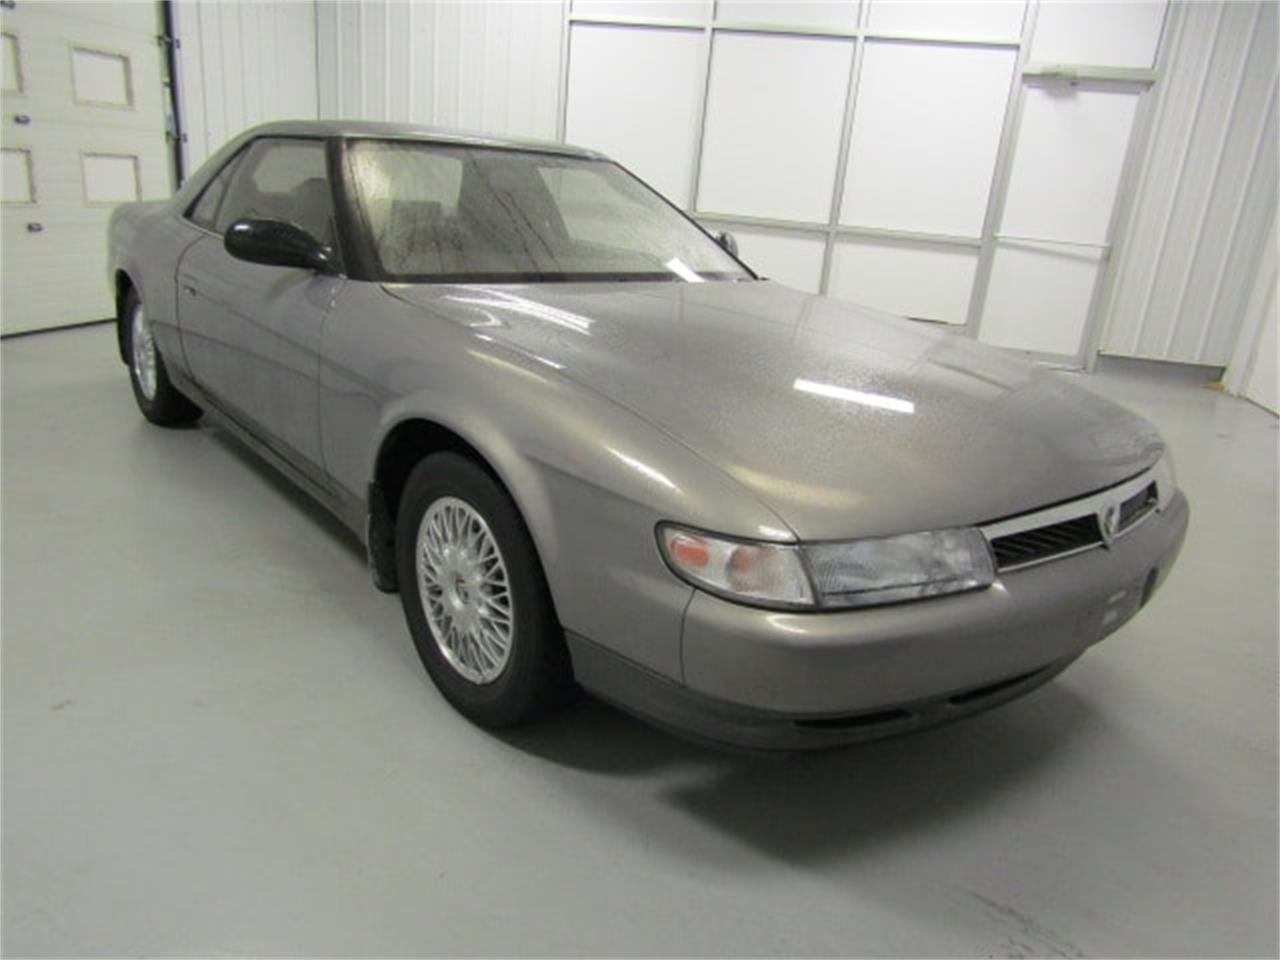 Large Picture of '92 Eunos Cosmo located in Christiansburg Virginia - $16,900.00 - LVD1